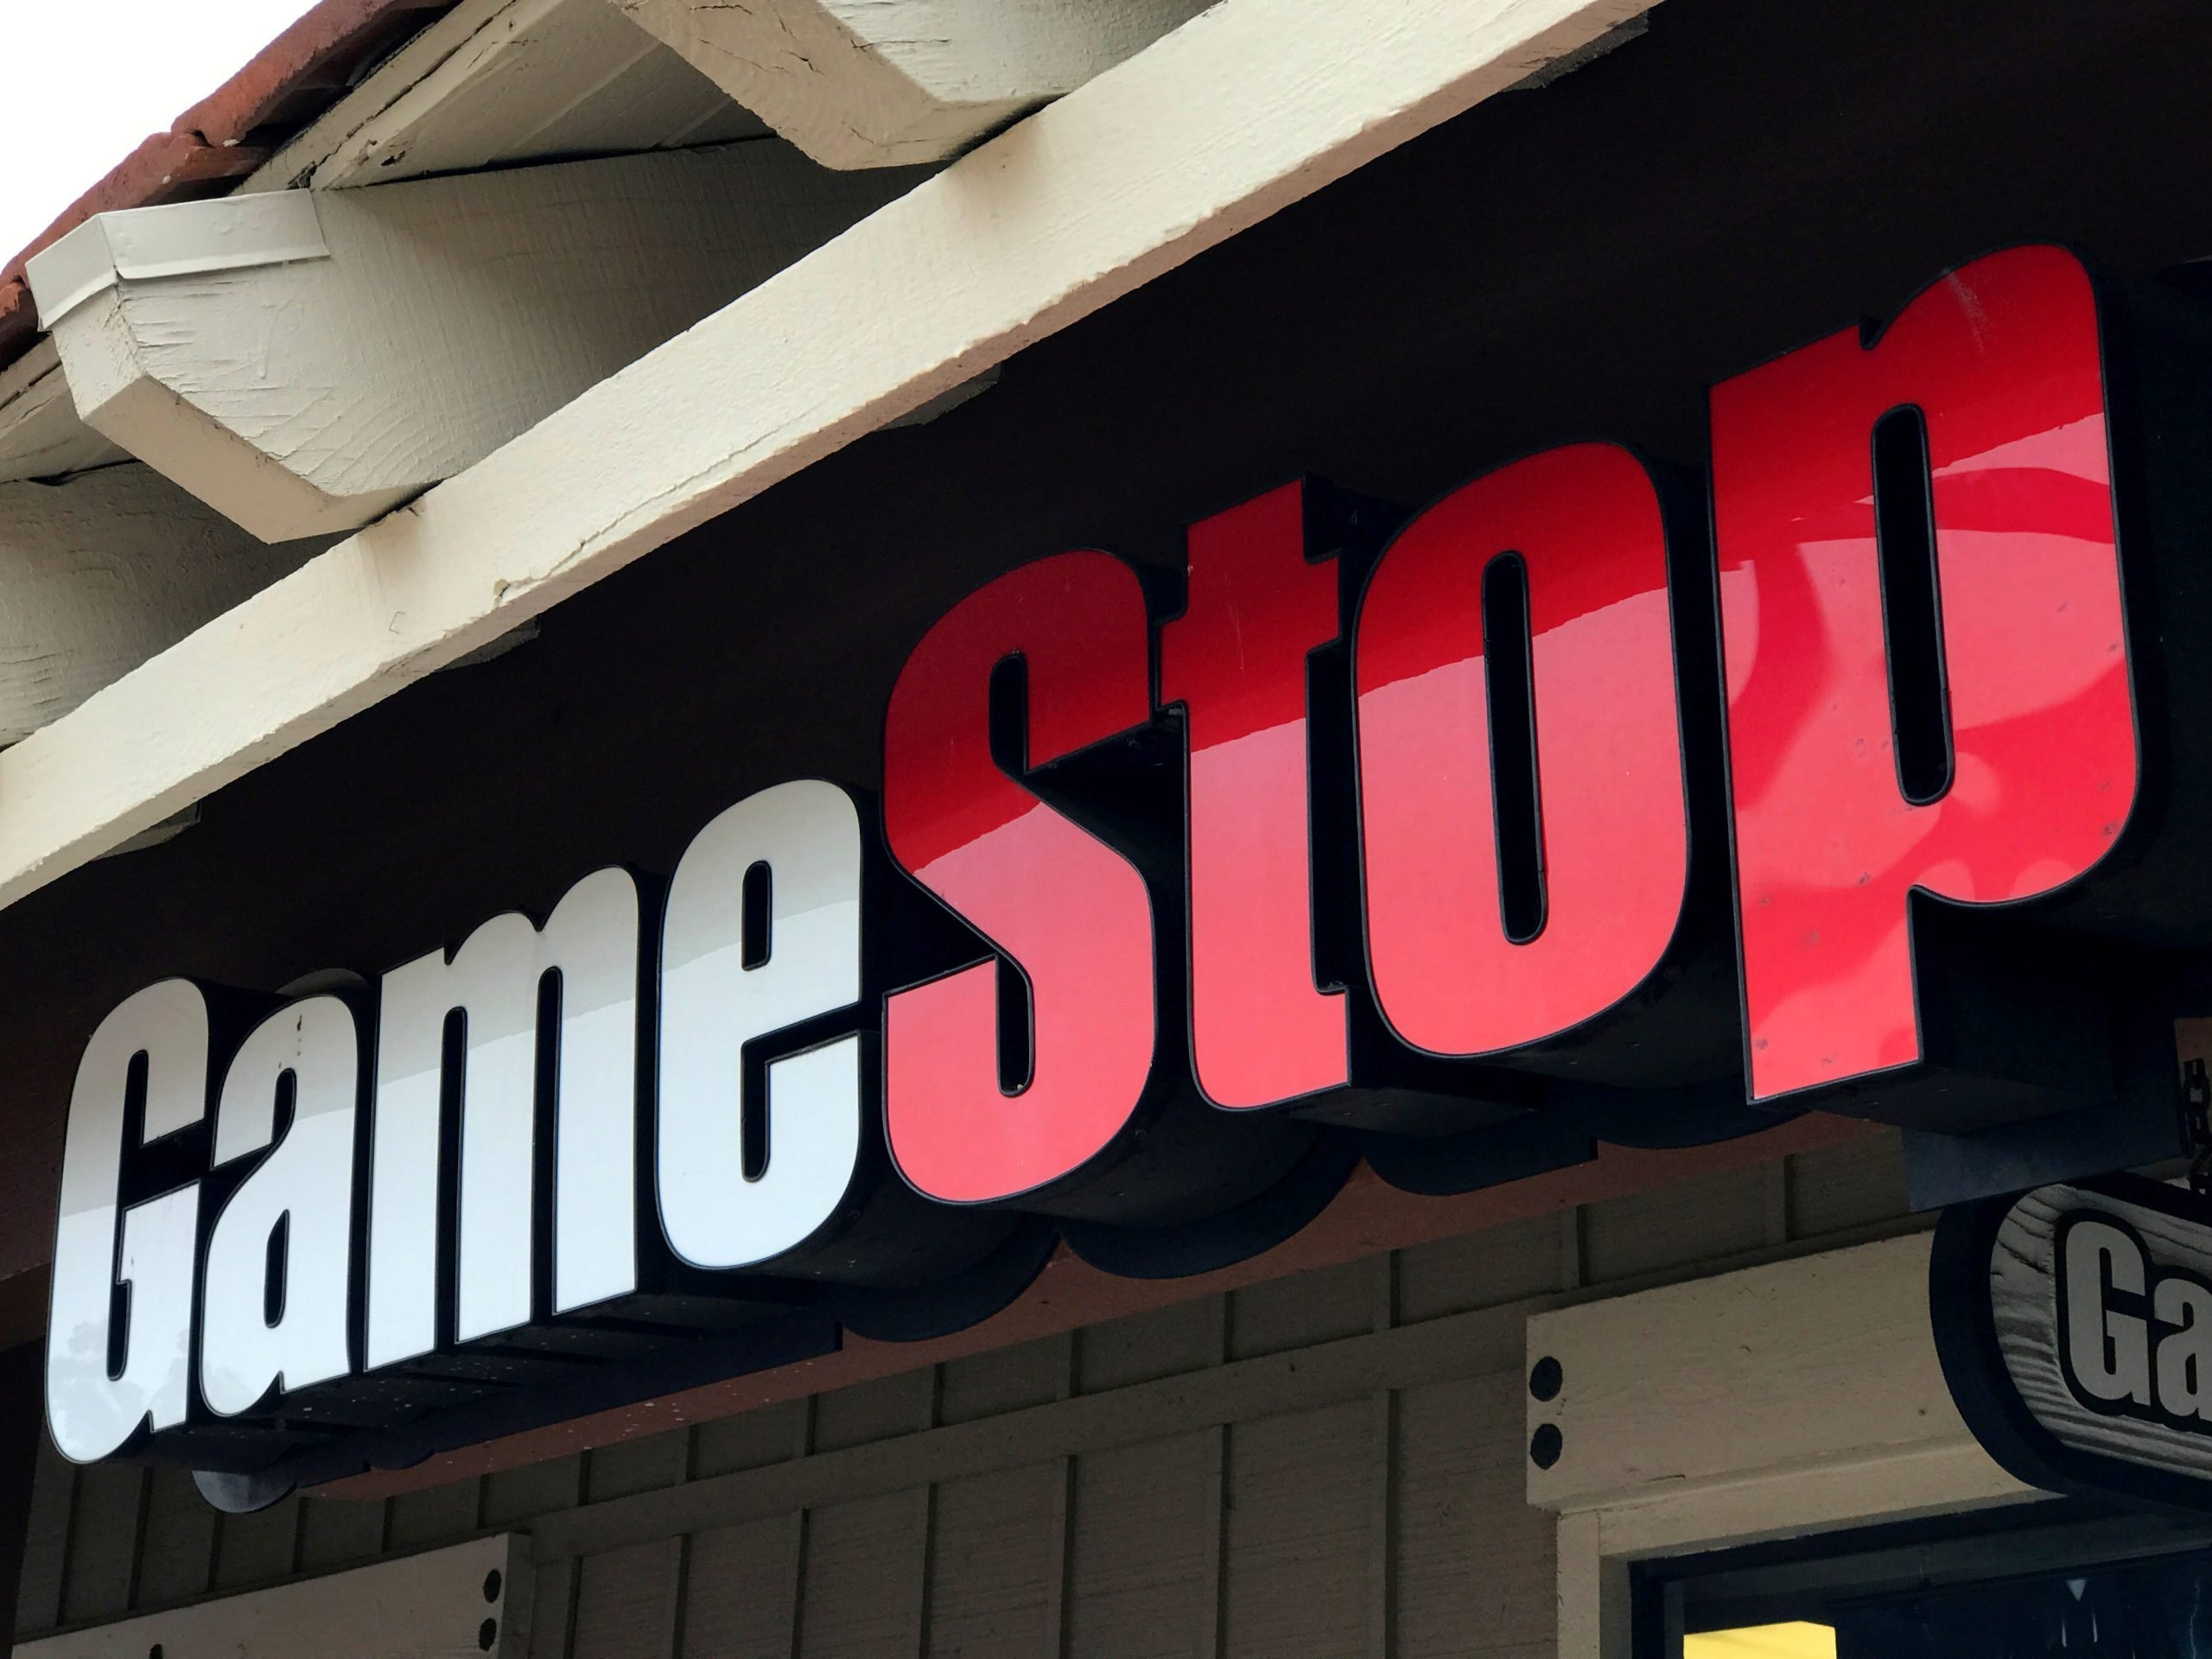 The main characters of the GameStop series should appear at the bottom of the USA